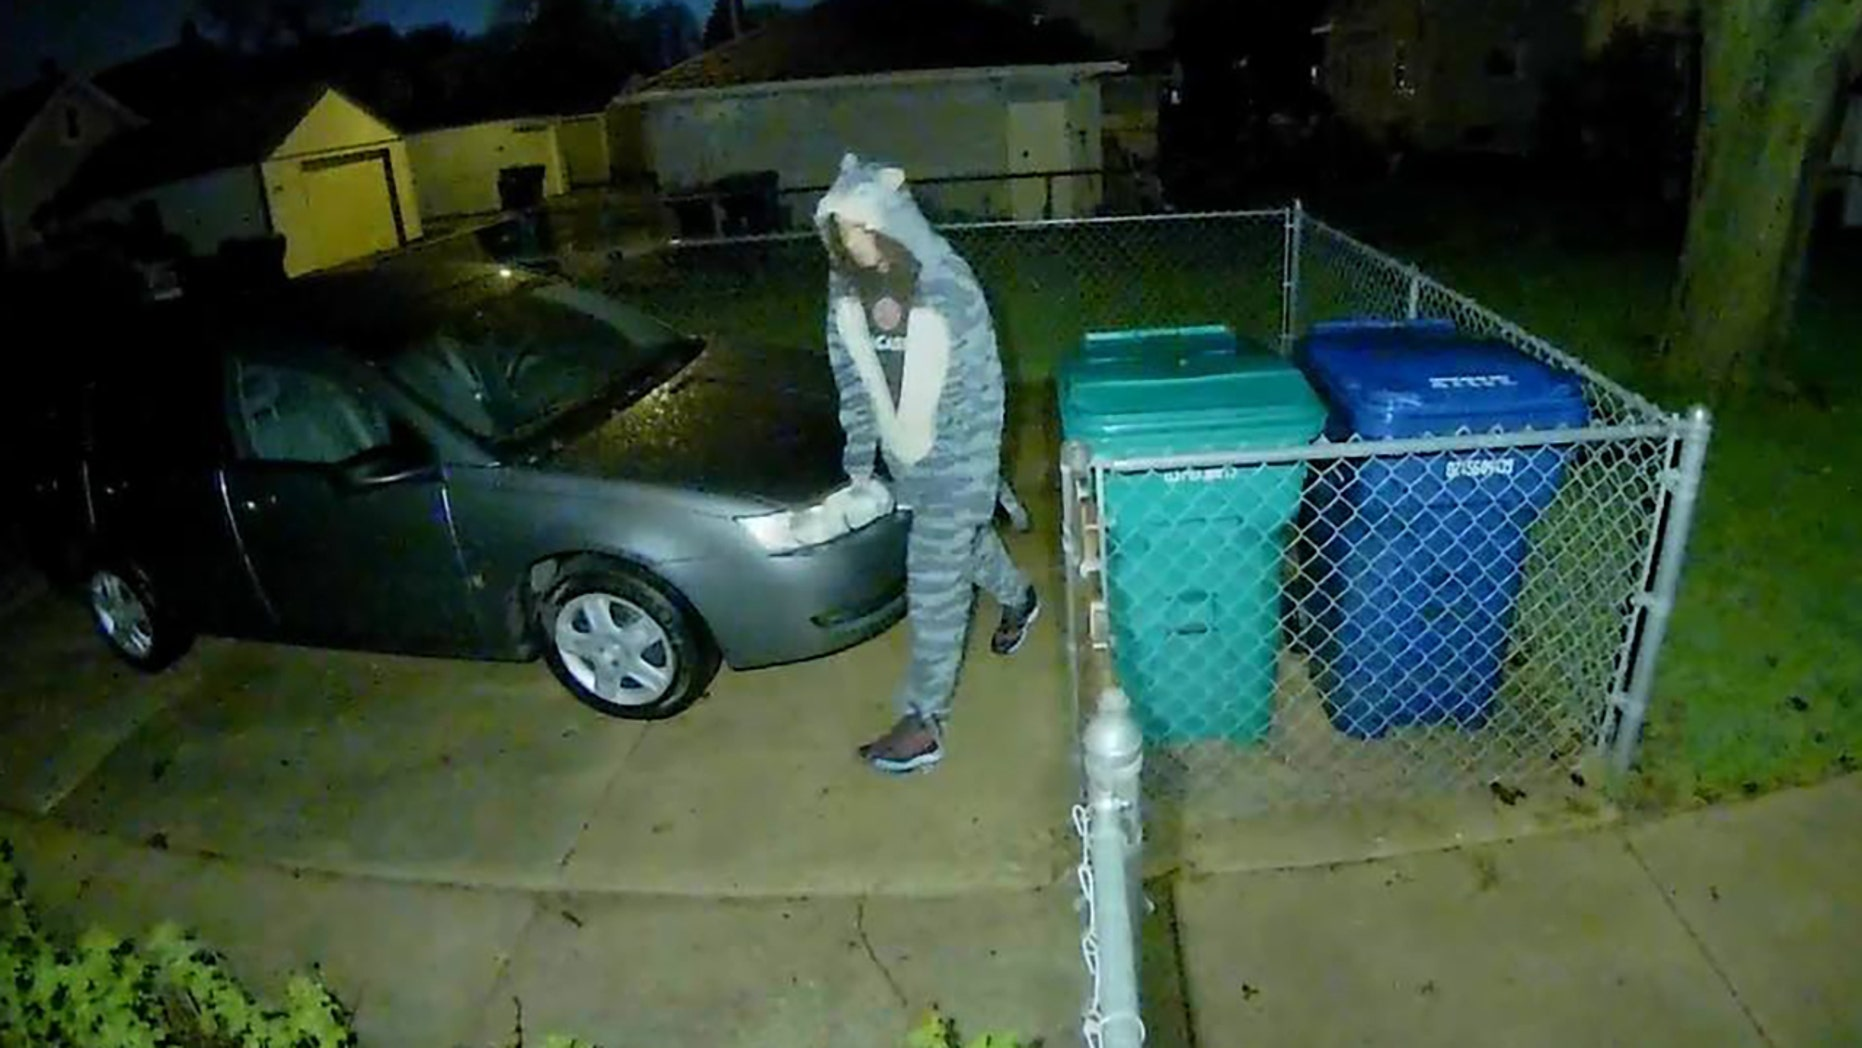 The man in a cat onesie allegedly burglarized cars and garages.